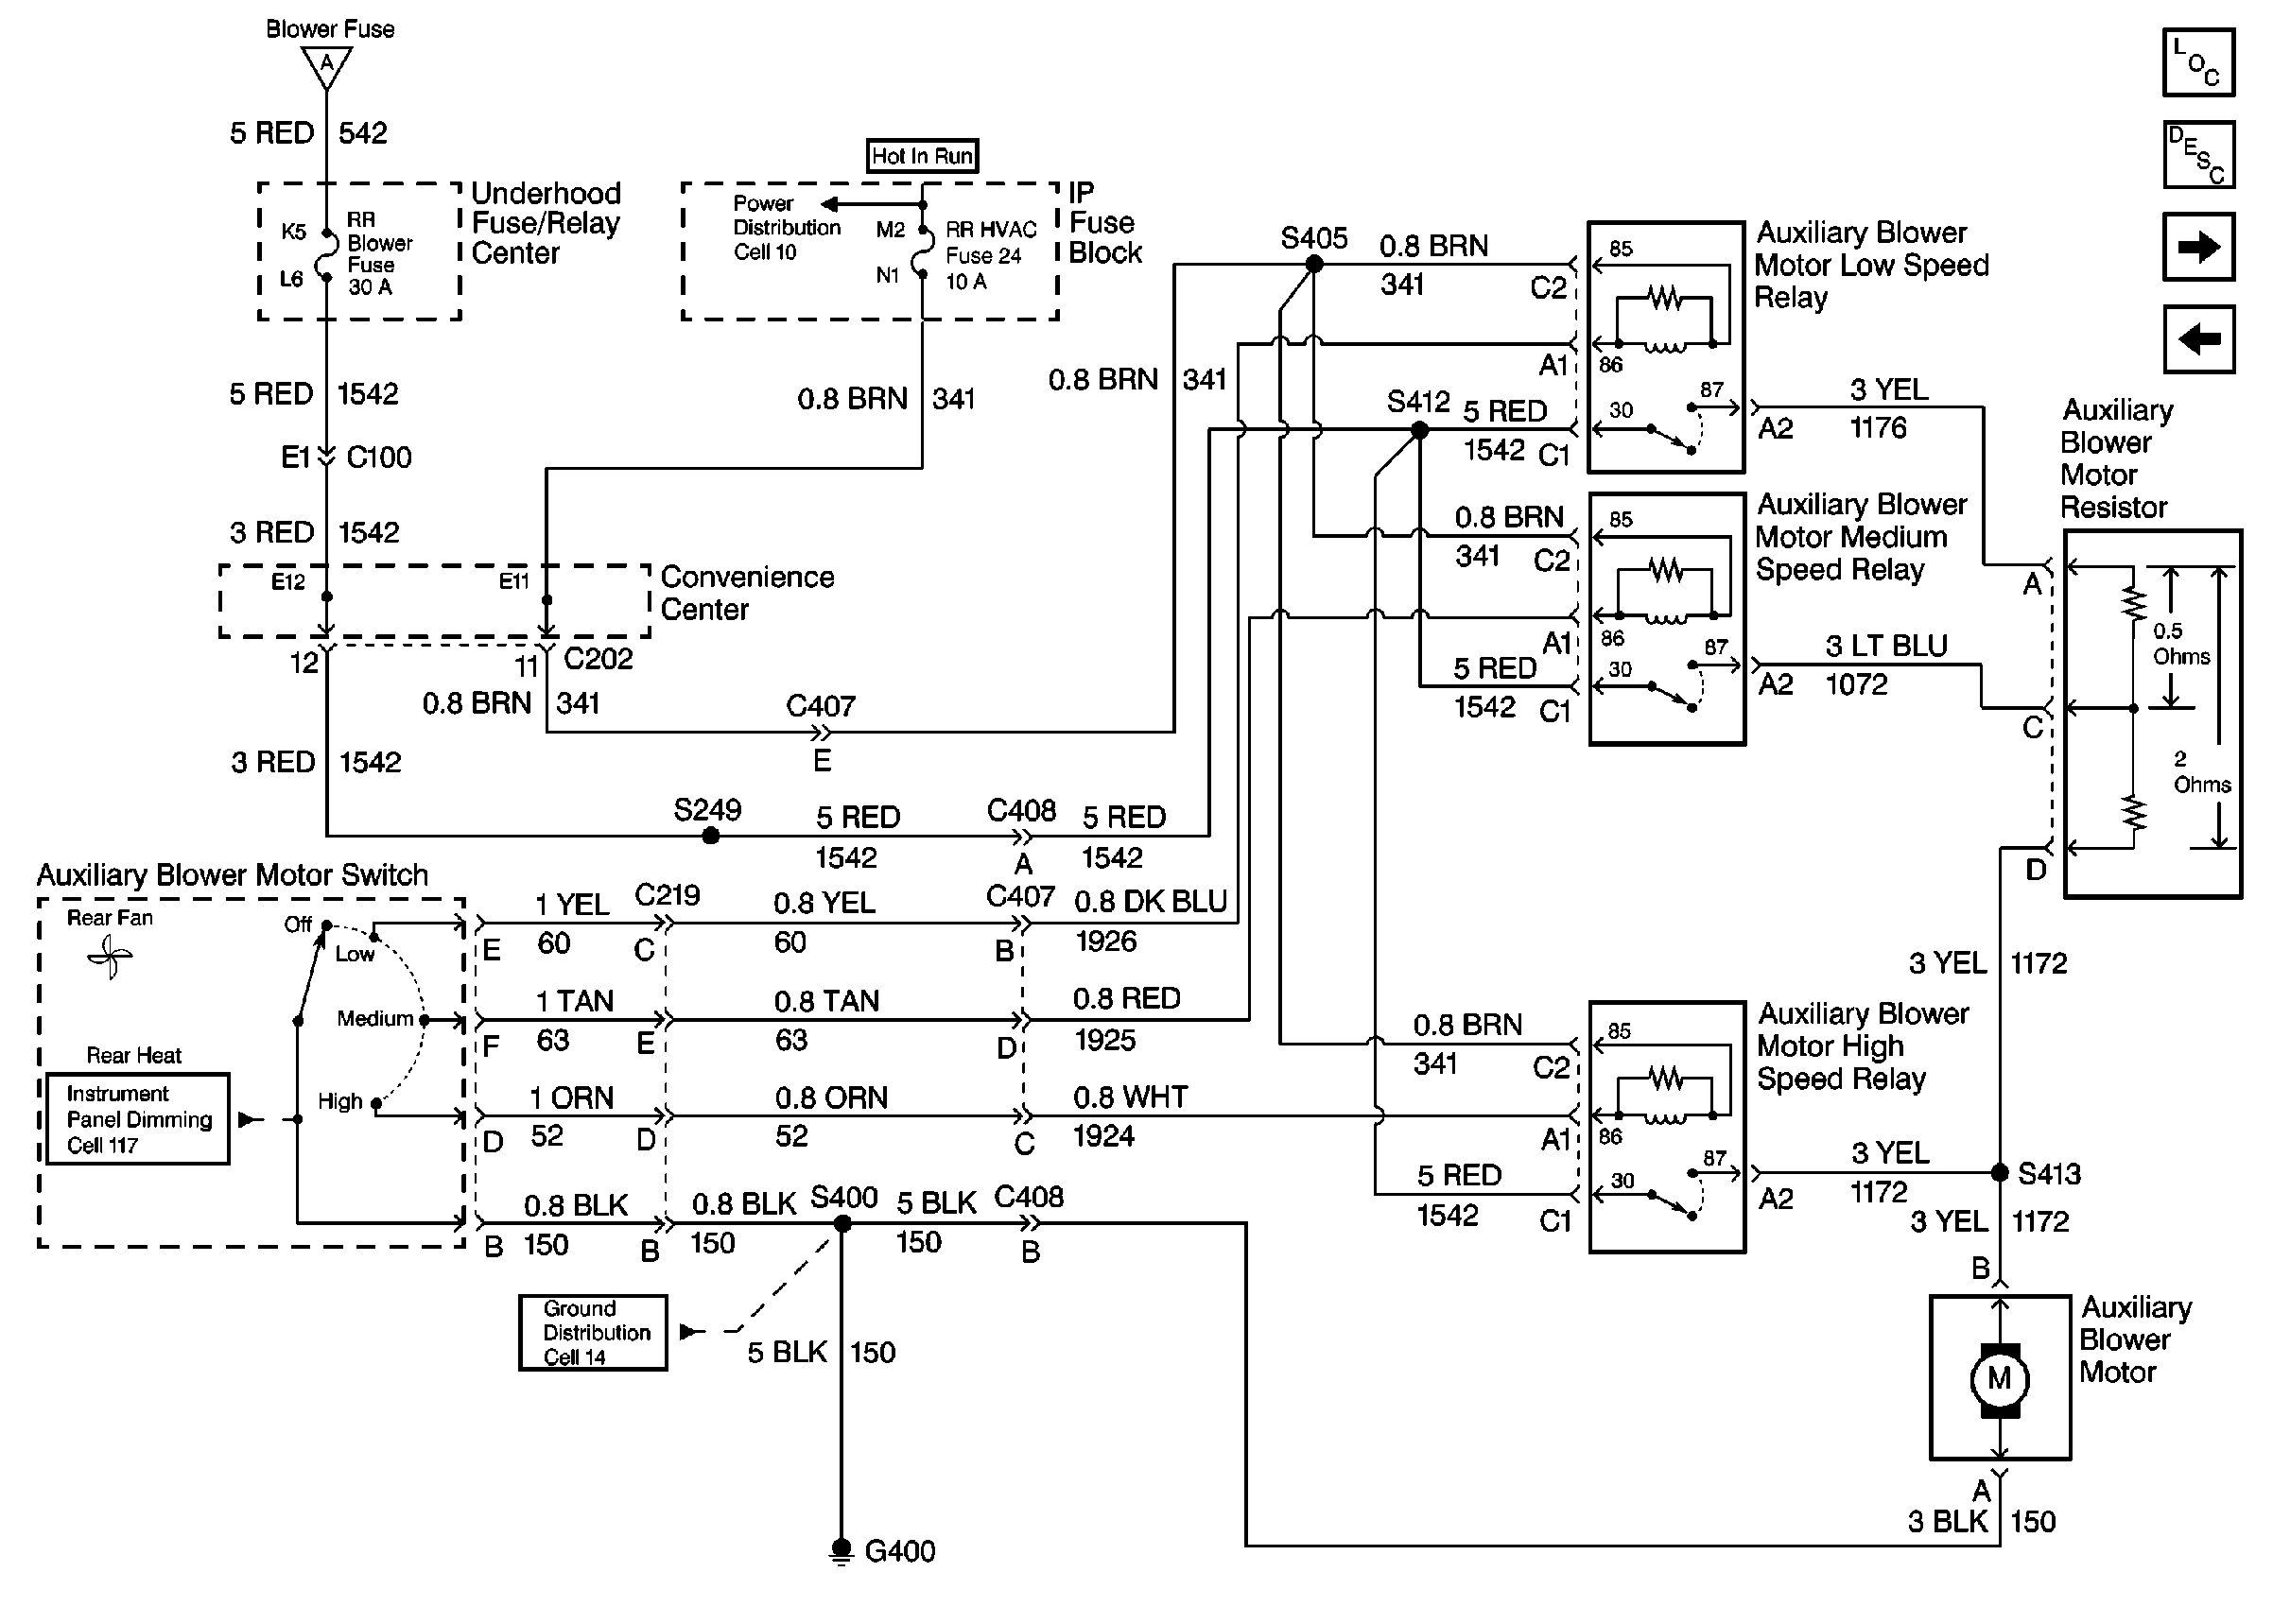 2013 Chevy Van Wiring Diagram Wiring Diagram System Pour Locate A Pour Locate A Ediliadesign It